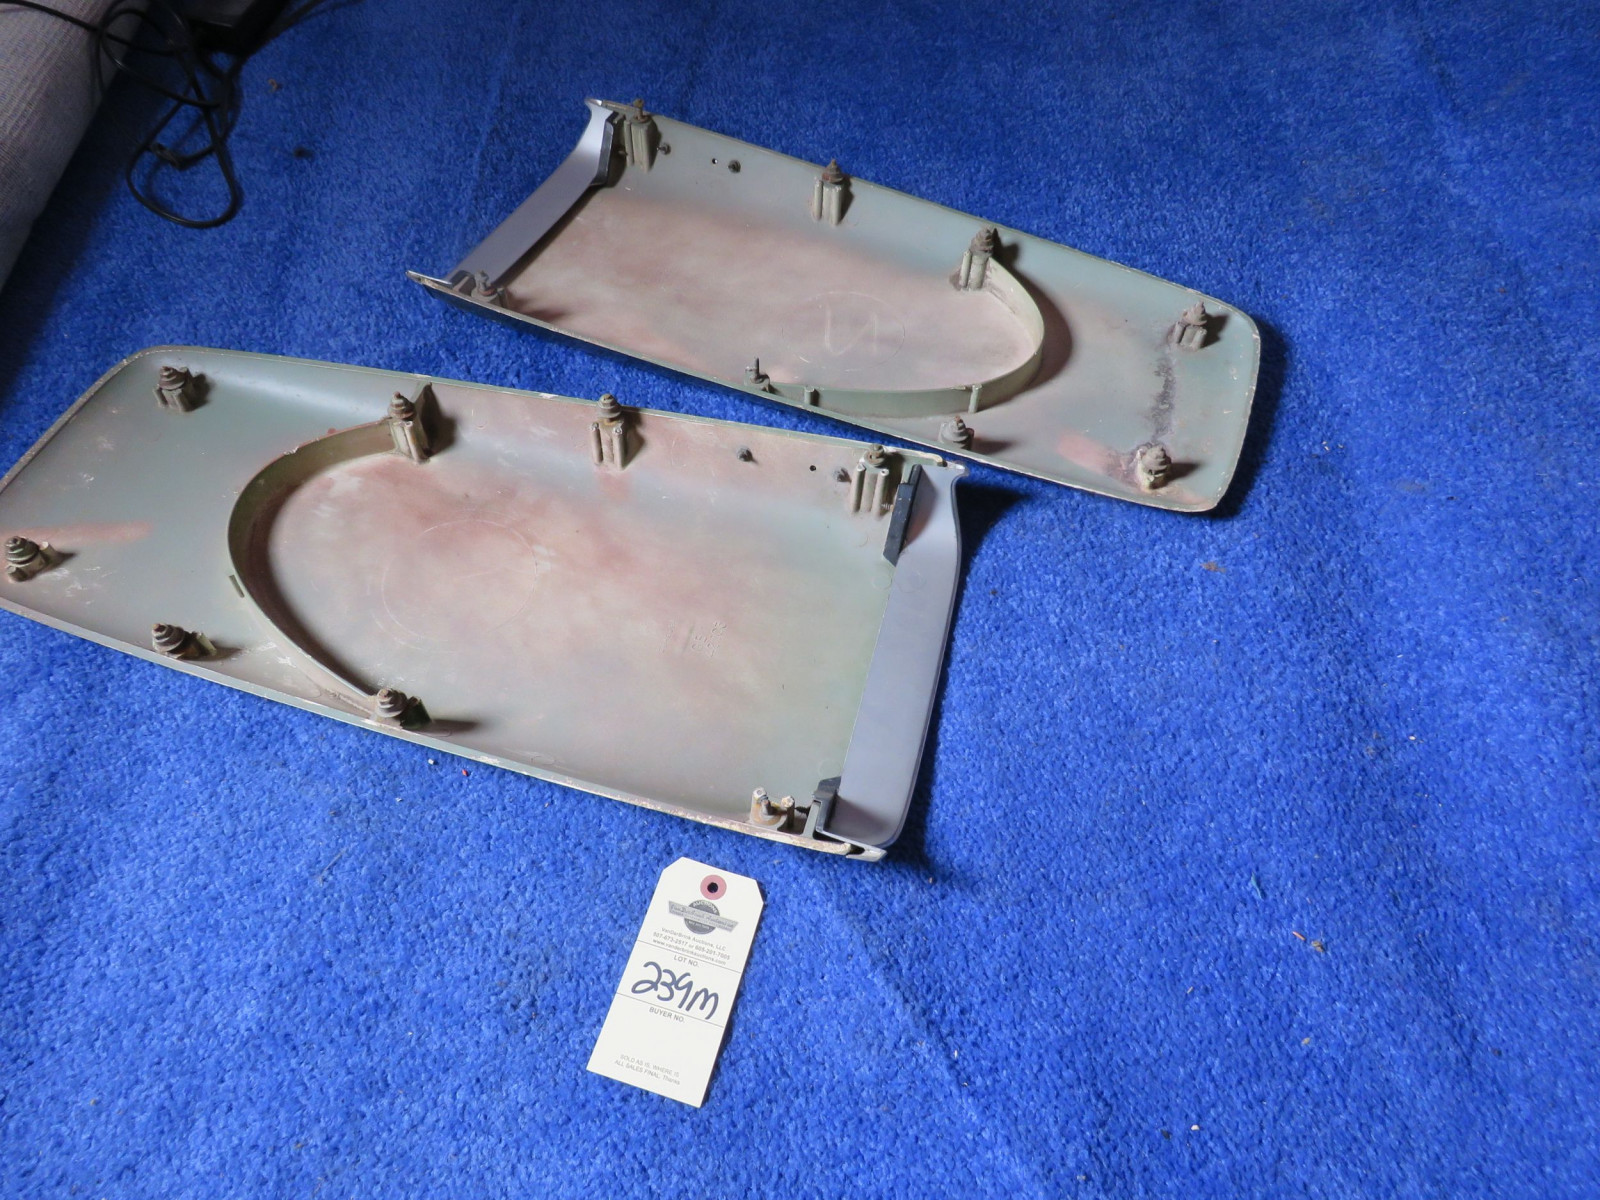 Original MOPAR 1969-72 A/B Body Twin Hood Scoops with 383 Emblems - Image 2